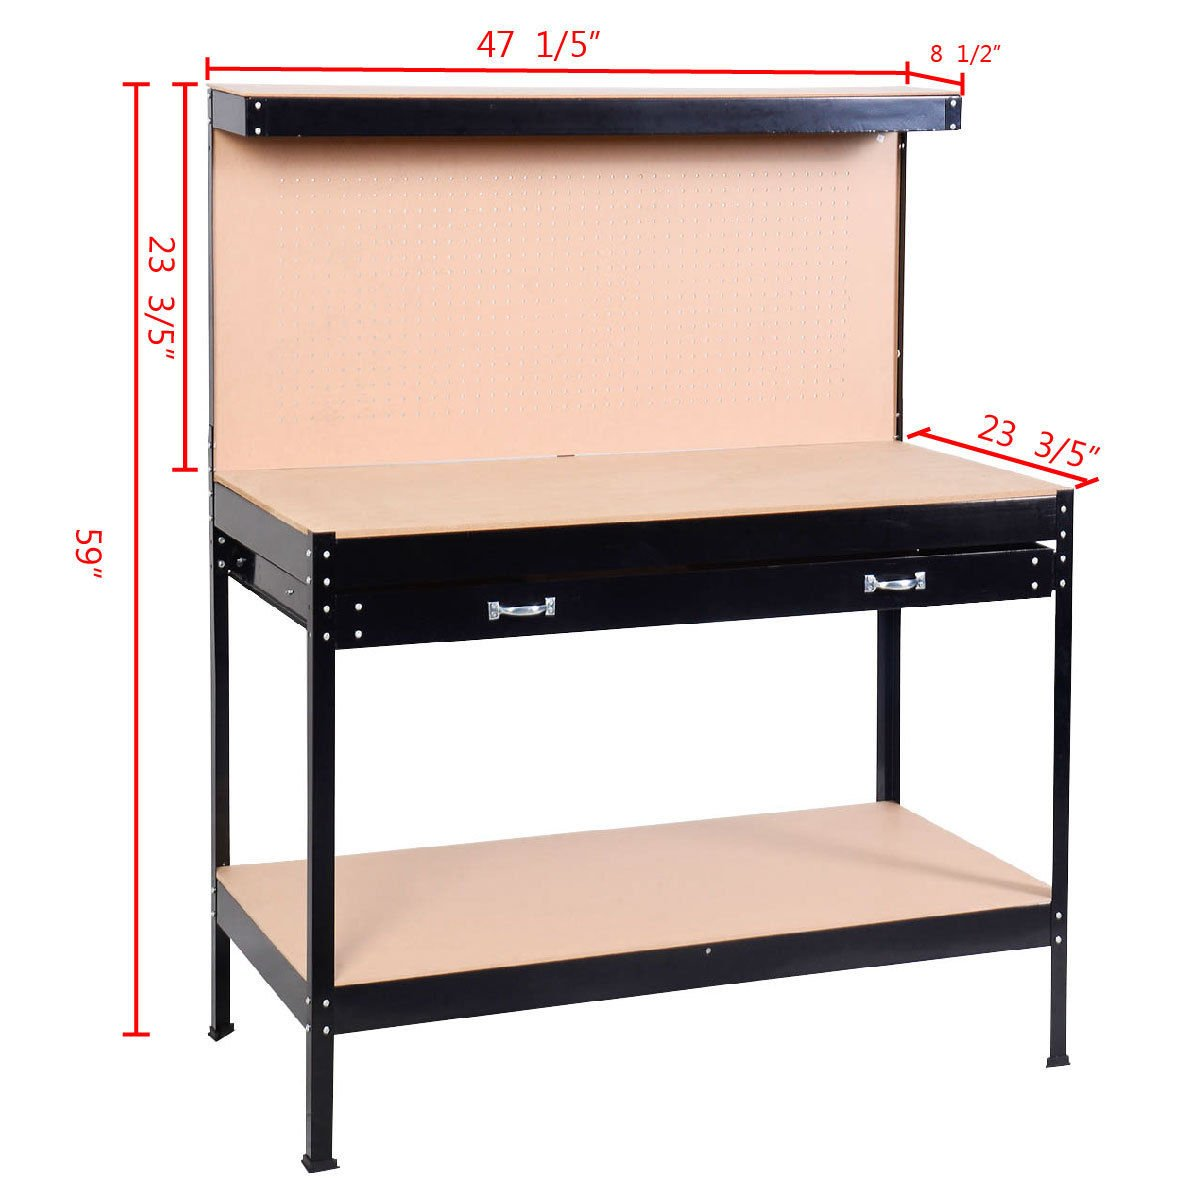 Work Bench Tool Storage Steel Frame Tool Workshop Table Most Viewed by Unknown (Image #4)